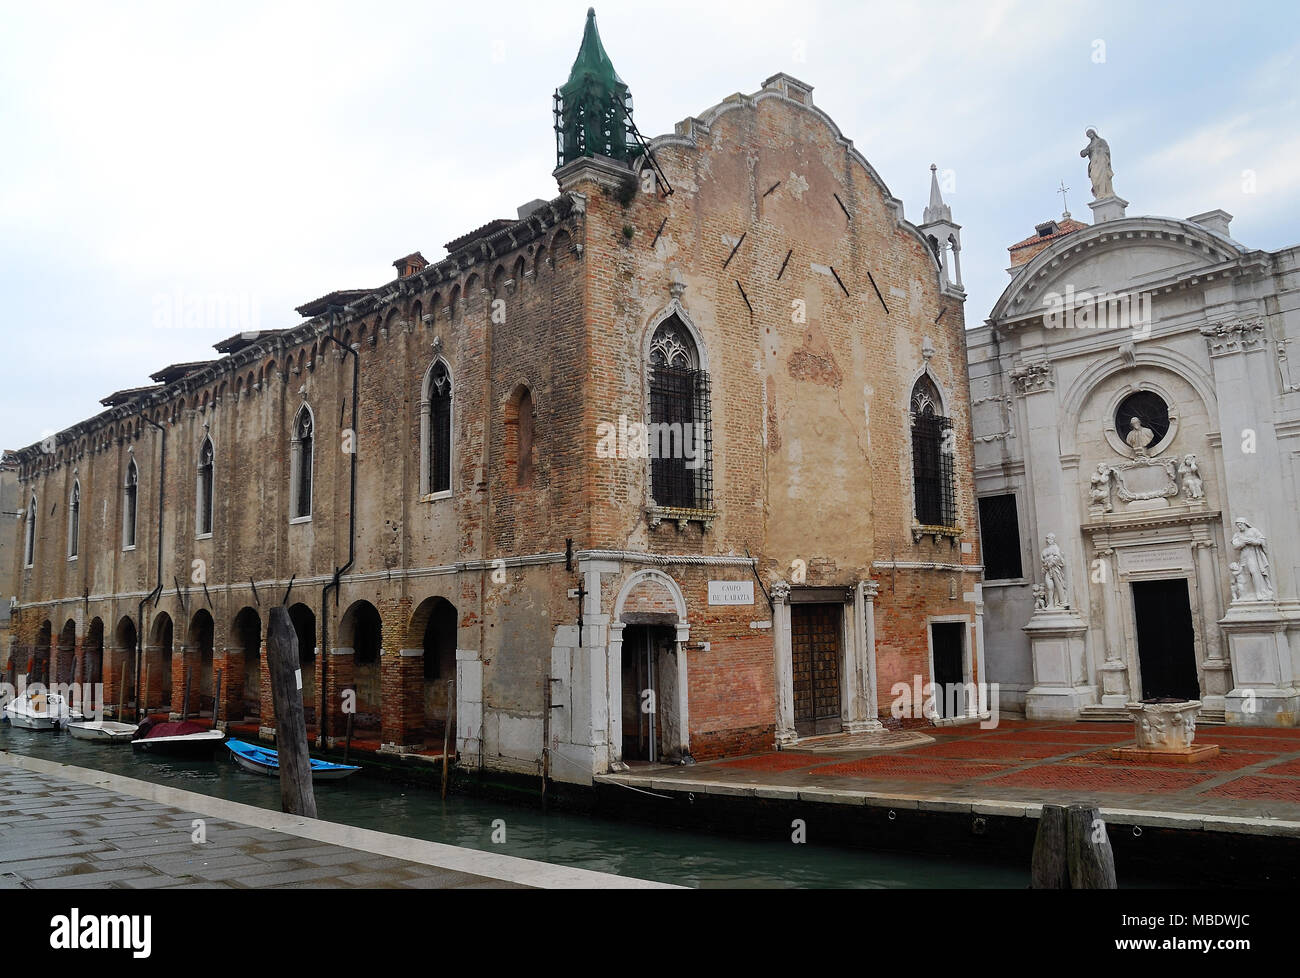 Venice, Italy. The Church of the Abbey of Misericordia (Chiesa dell' Abbazia della Misericordia) is a religious edifice in Venice, Italy, in the sestiere Cannaregio. It was founded in the 10th century. The façade was restored in 1659 by the patrician Gaspare Moro. It is decorated by allegoric statues, including a bust of Moro, all work by Clemente Molli. On the right is a 13th-century bas-relief depicting the Madonna with Child. The church was in dismaying condition in the 19th century, and was restored until 1864. It is adiacent to the Scuola vecchia della Misericordia. - Stock Image